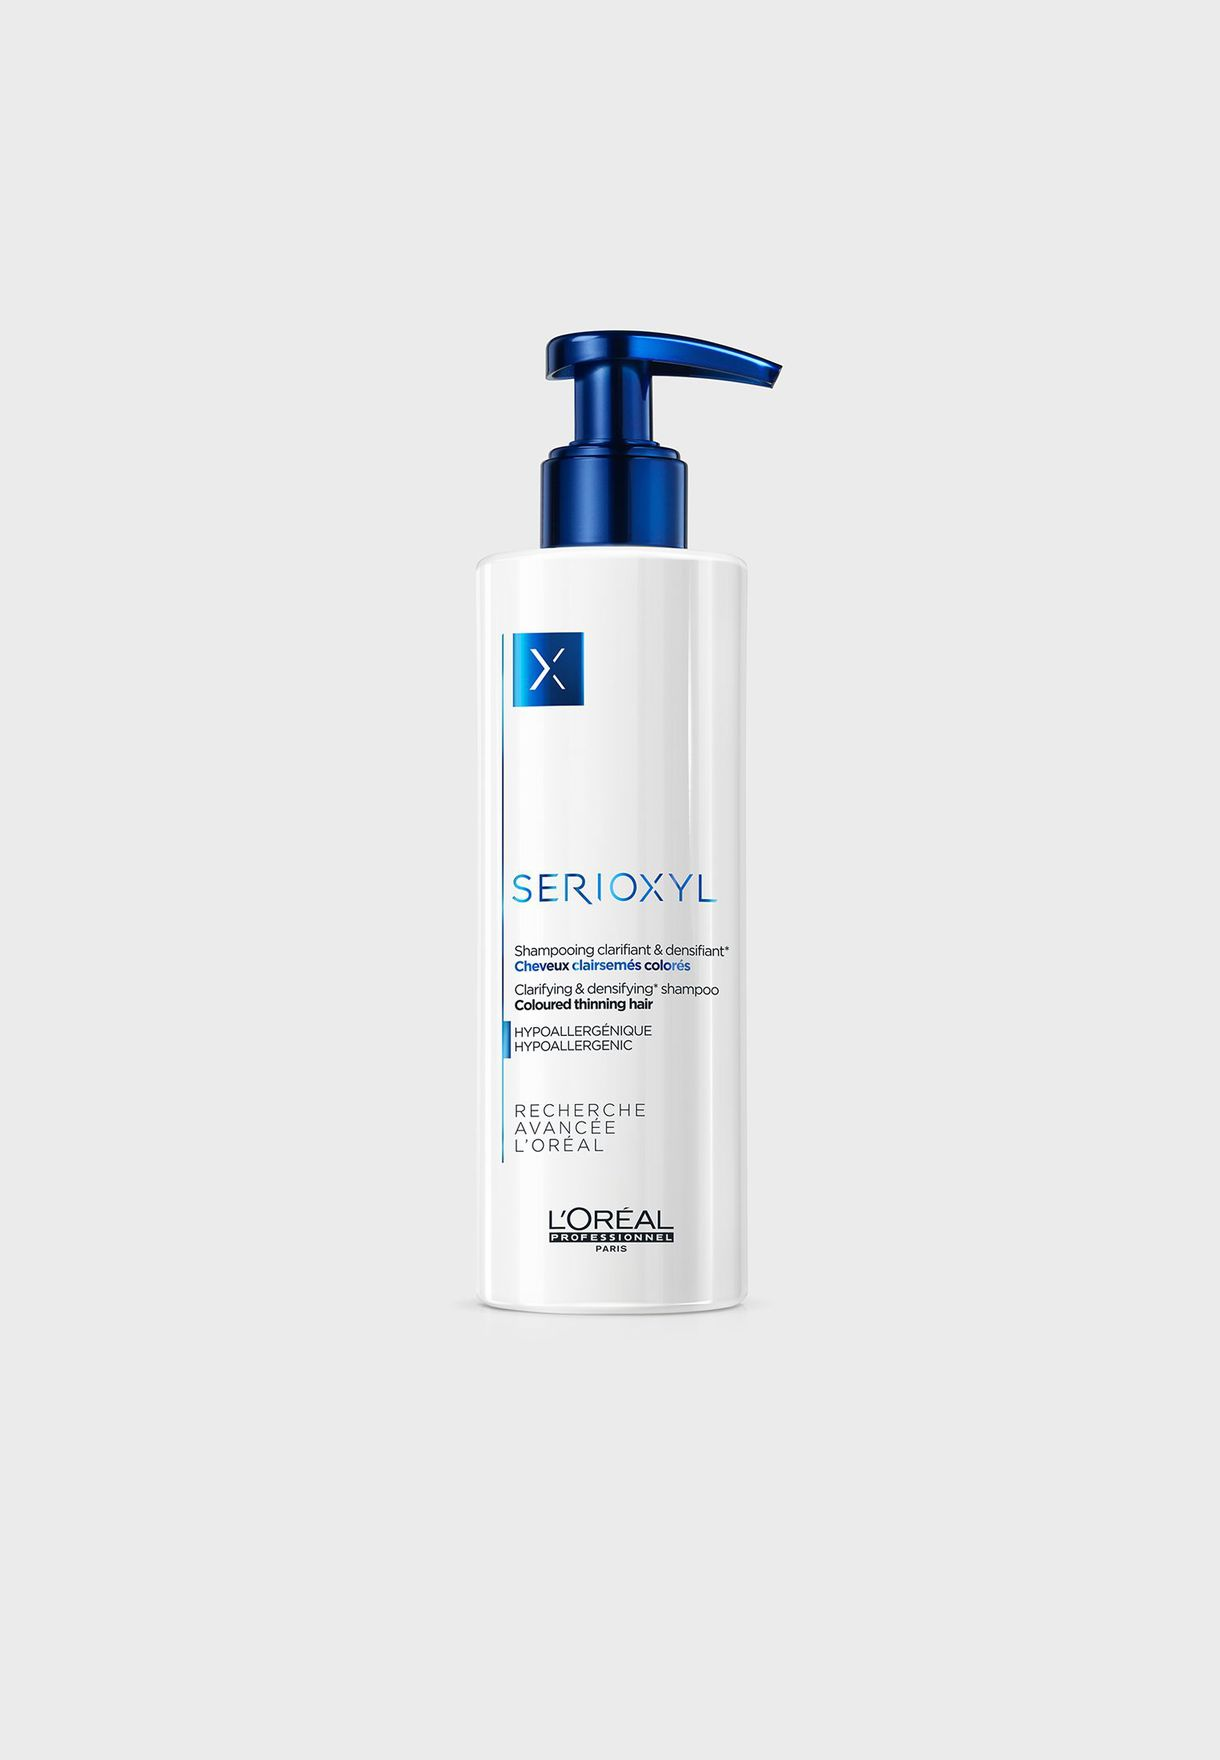 Serioxyl Densifying Shampoo For Colored Thinning Hair 250ml